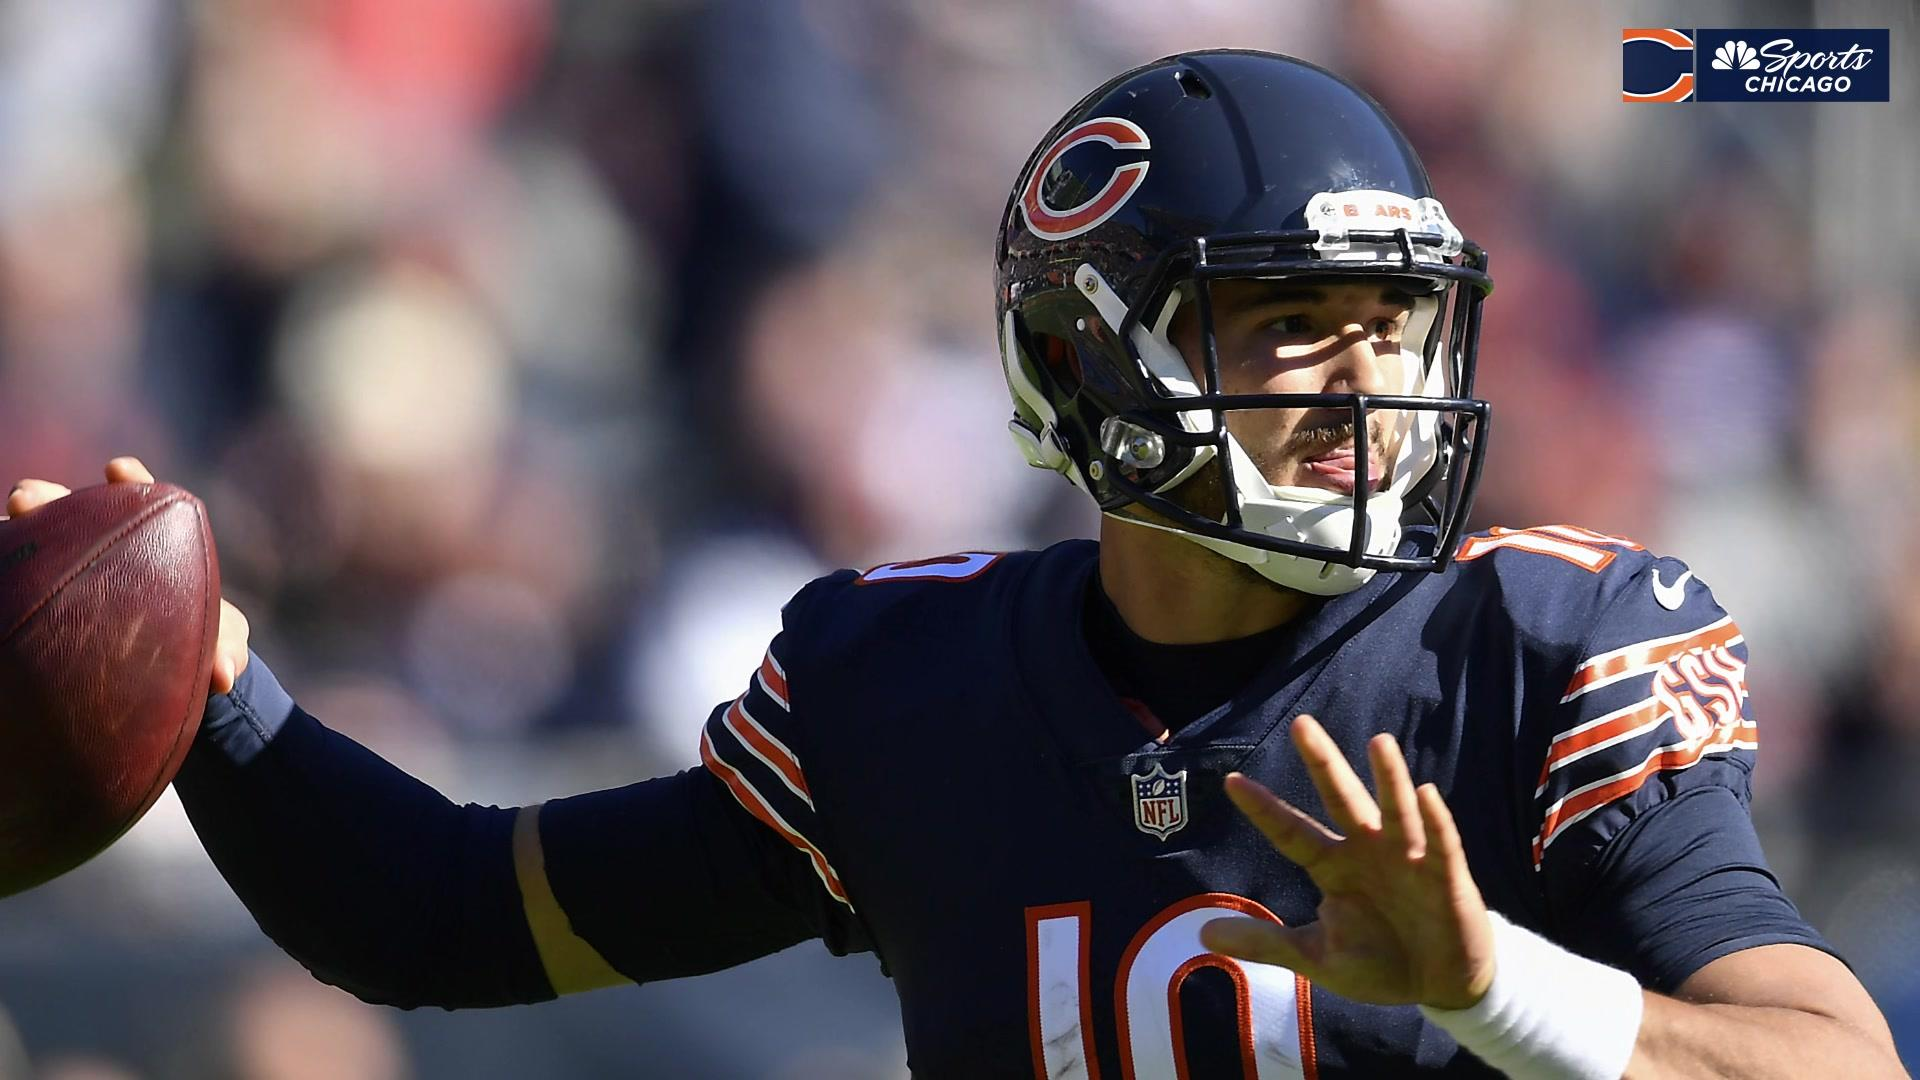 Matt Nagy stressed confidence in Trubisky's choices, mobility against Pats